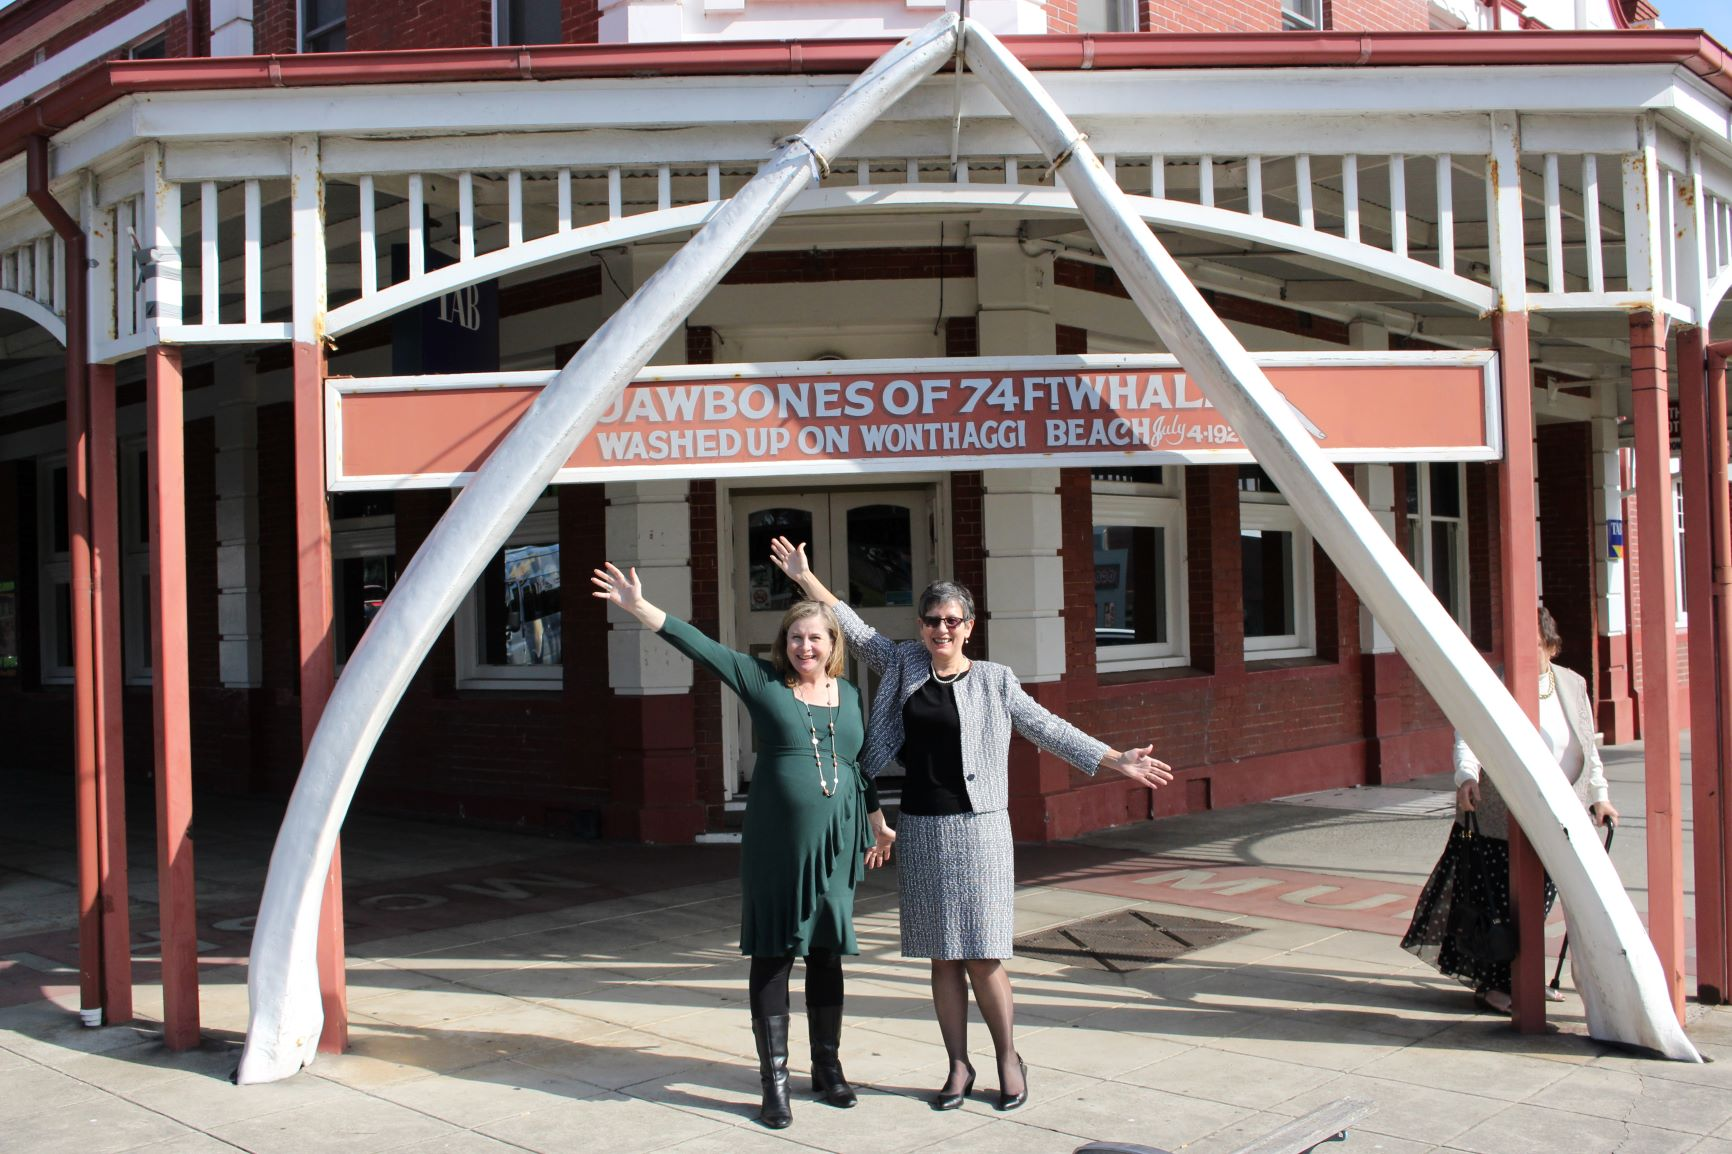 Two women stand under the Jawbones of the 74ft whale at Wonthaggi